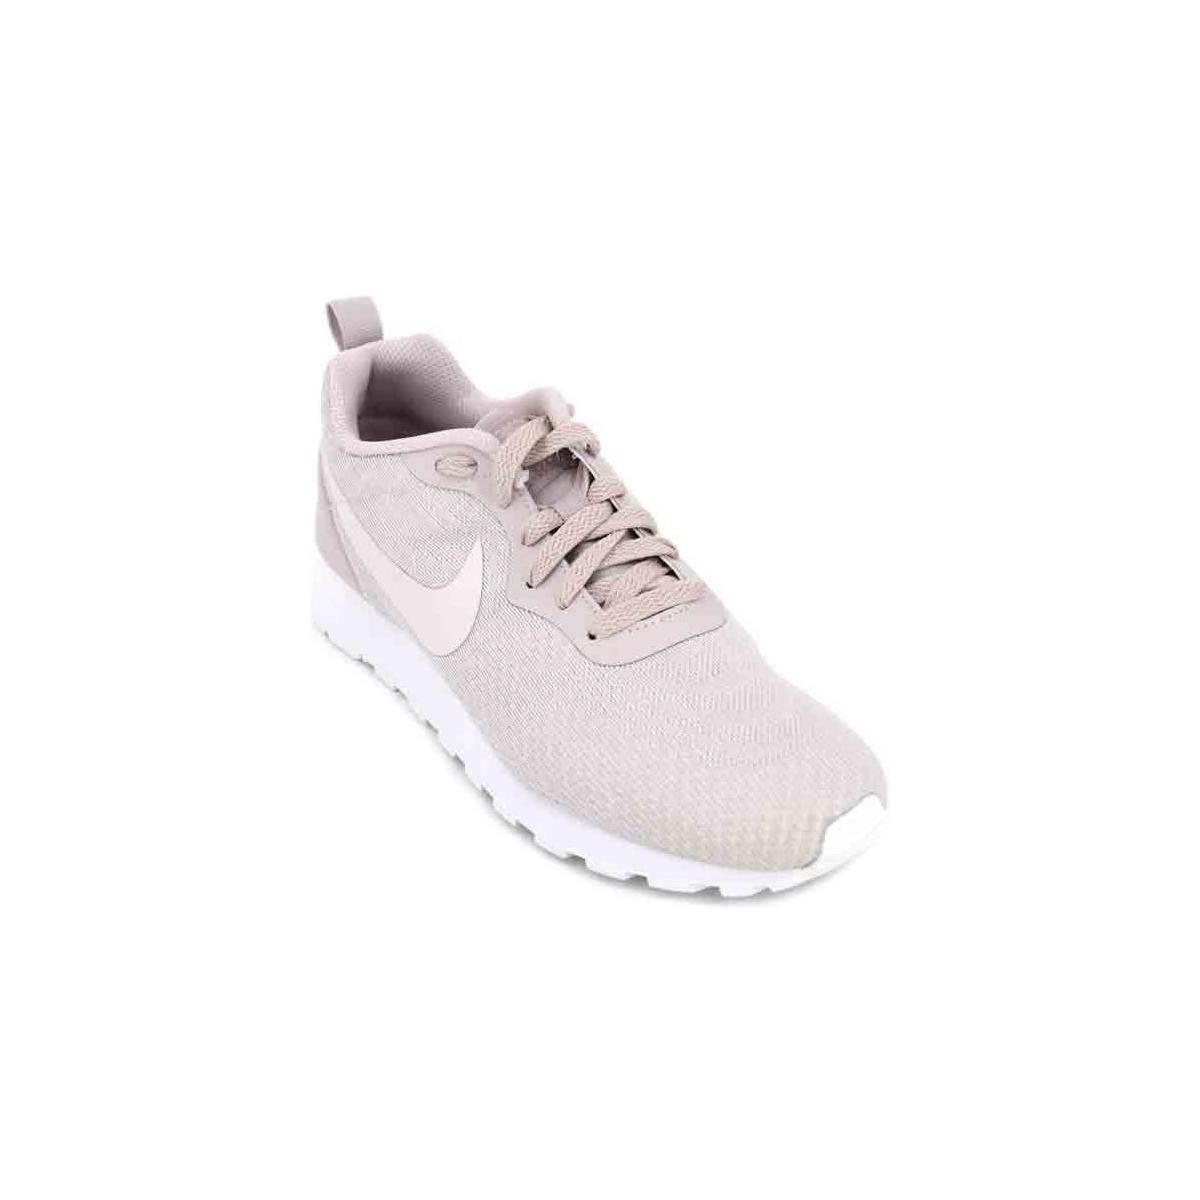 more photos ef15d 20e2f Nike. Wmns Md Runner 2 Eng 916797 Women s Trainers Women s Shoes (trainers)  In Pink